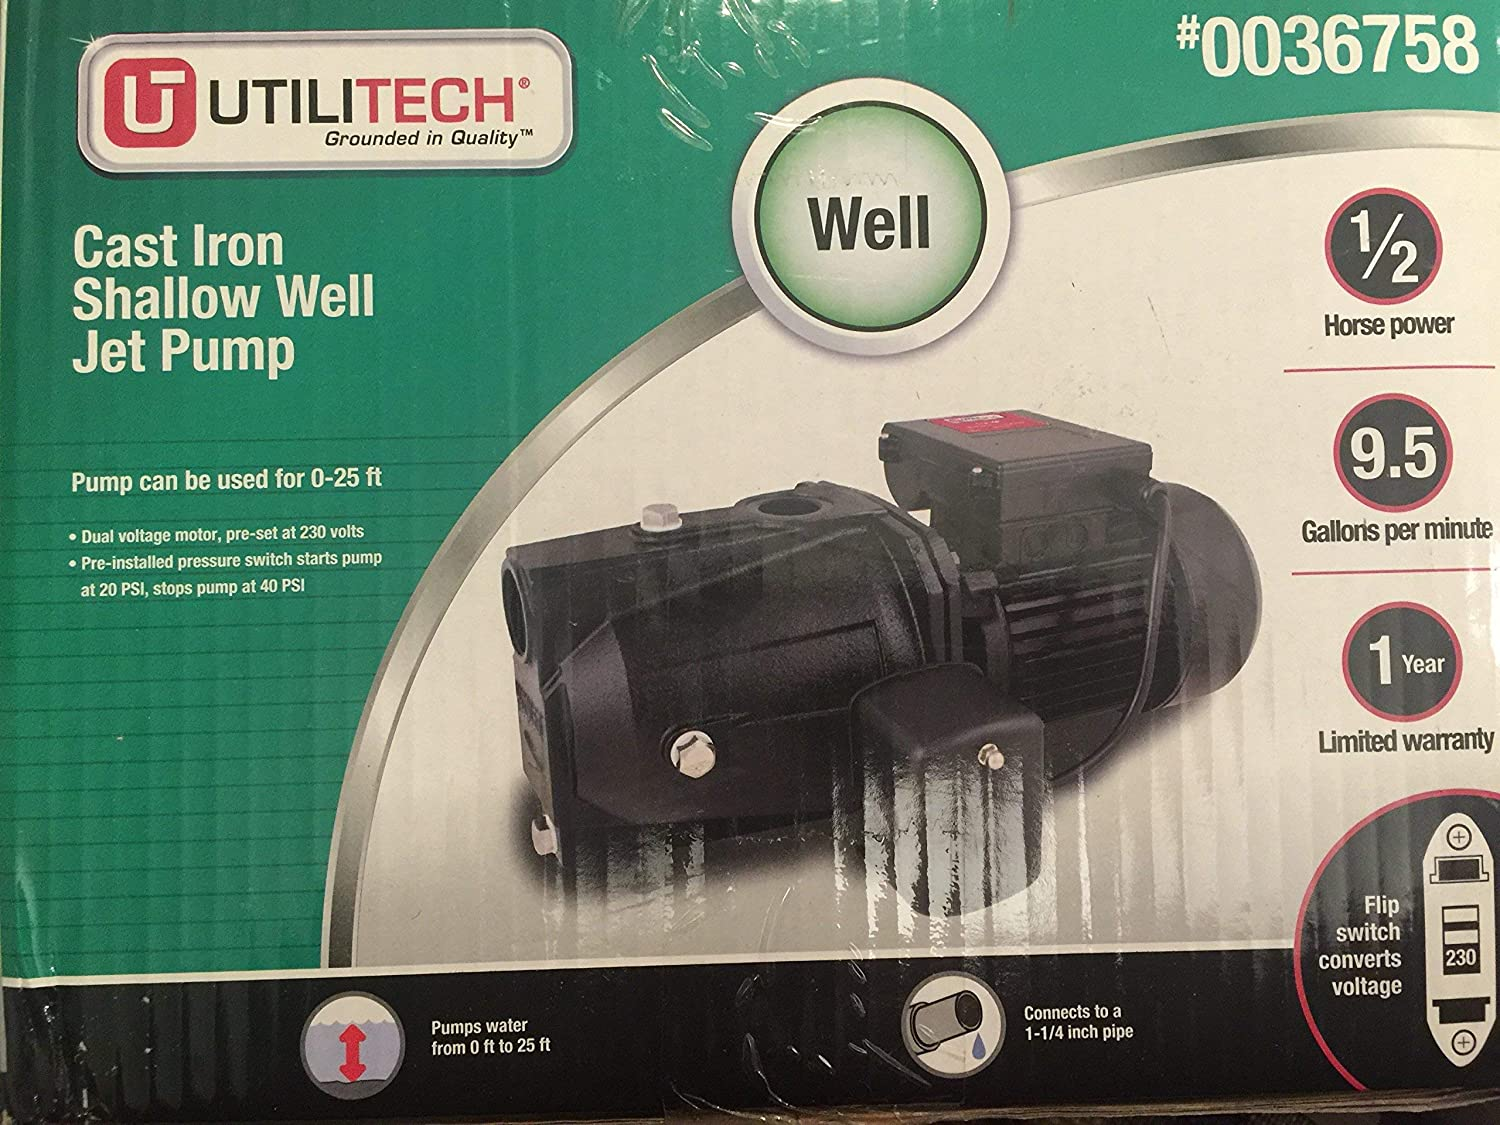 Utilitech cast iron shallow jet pump